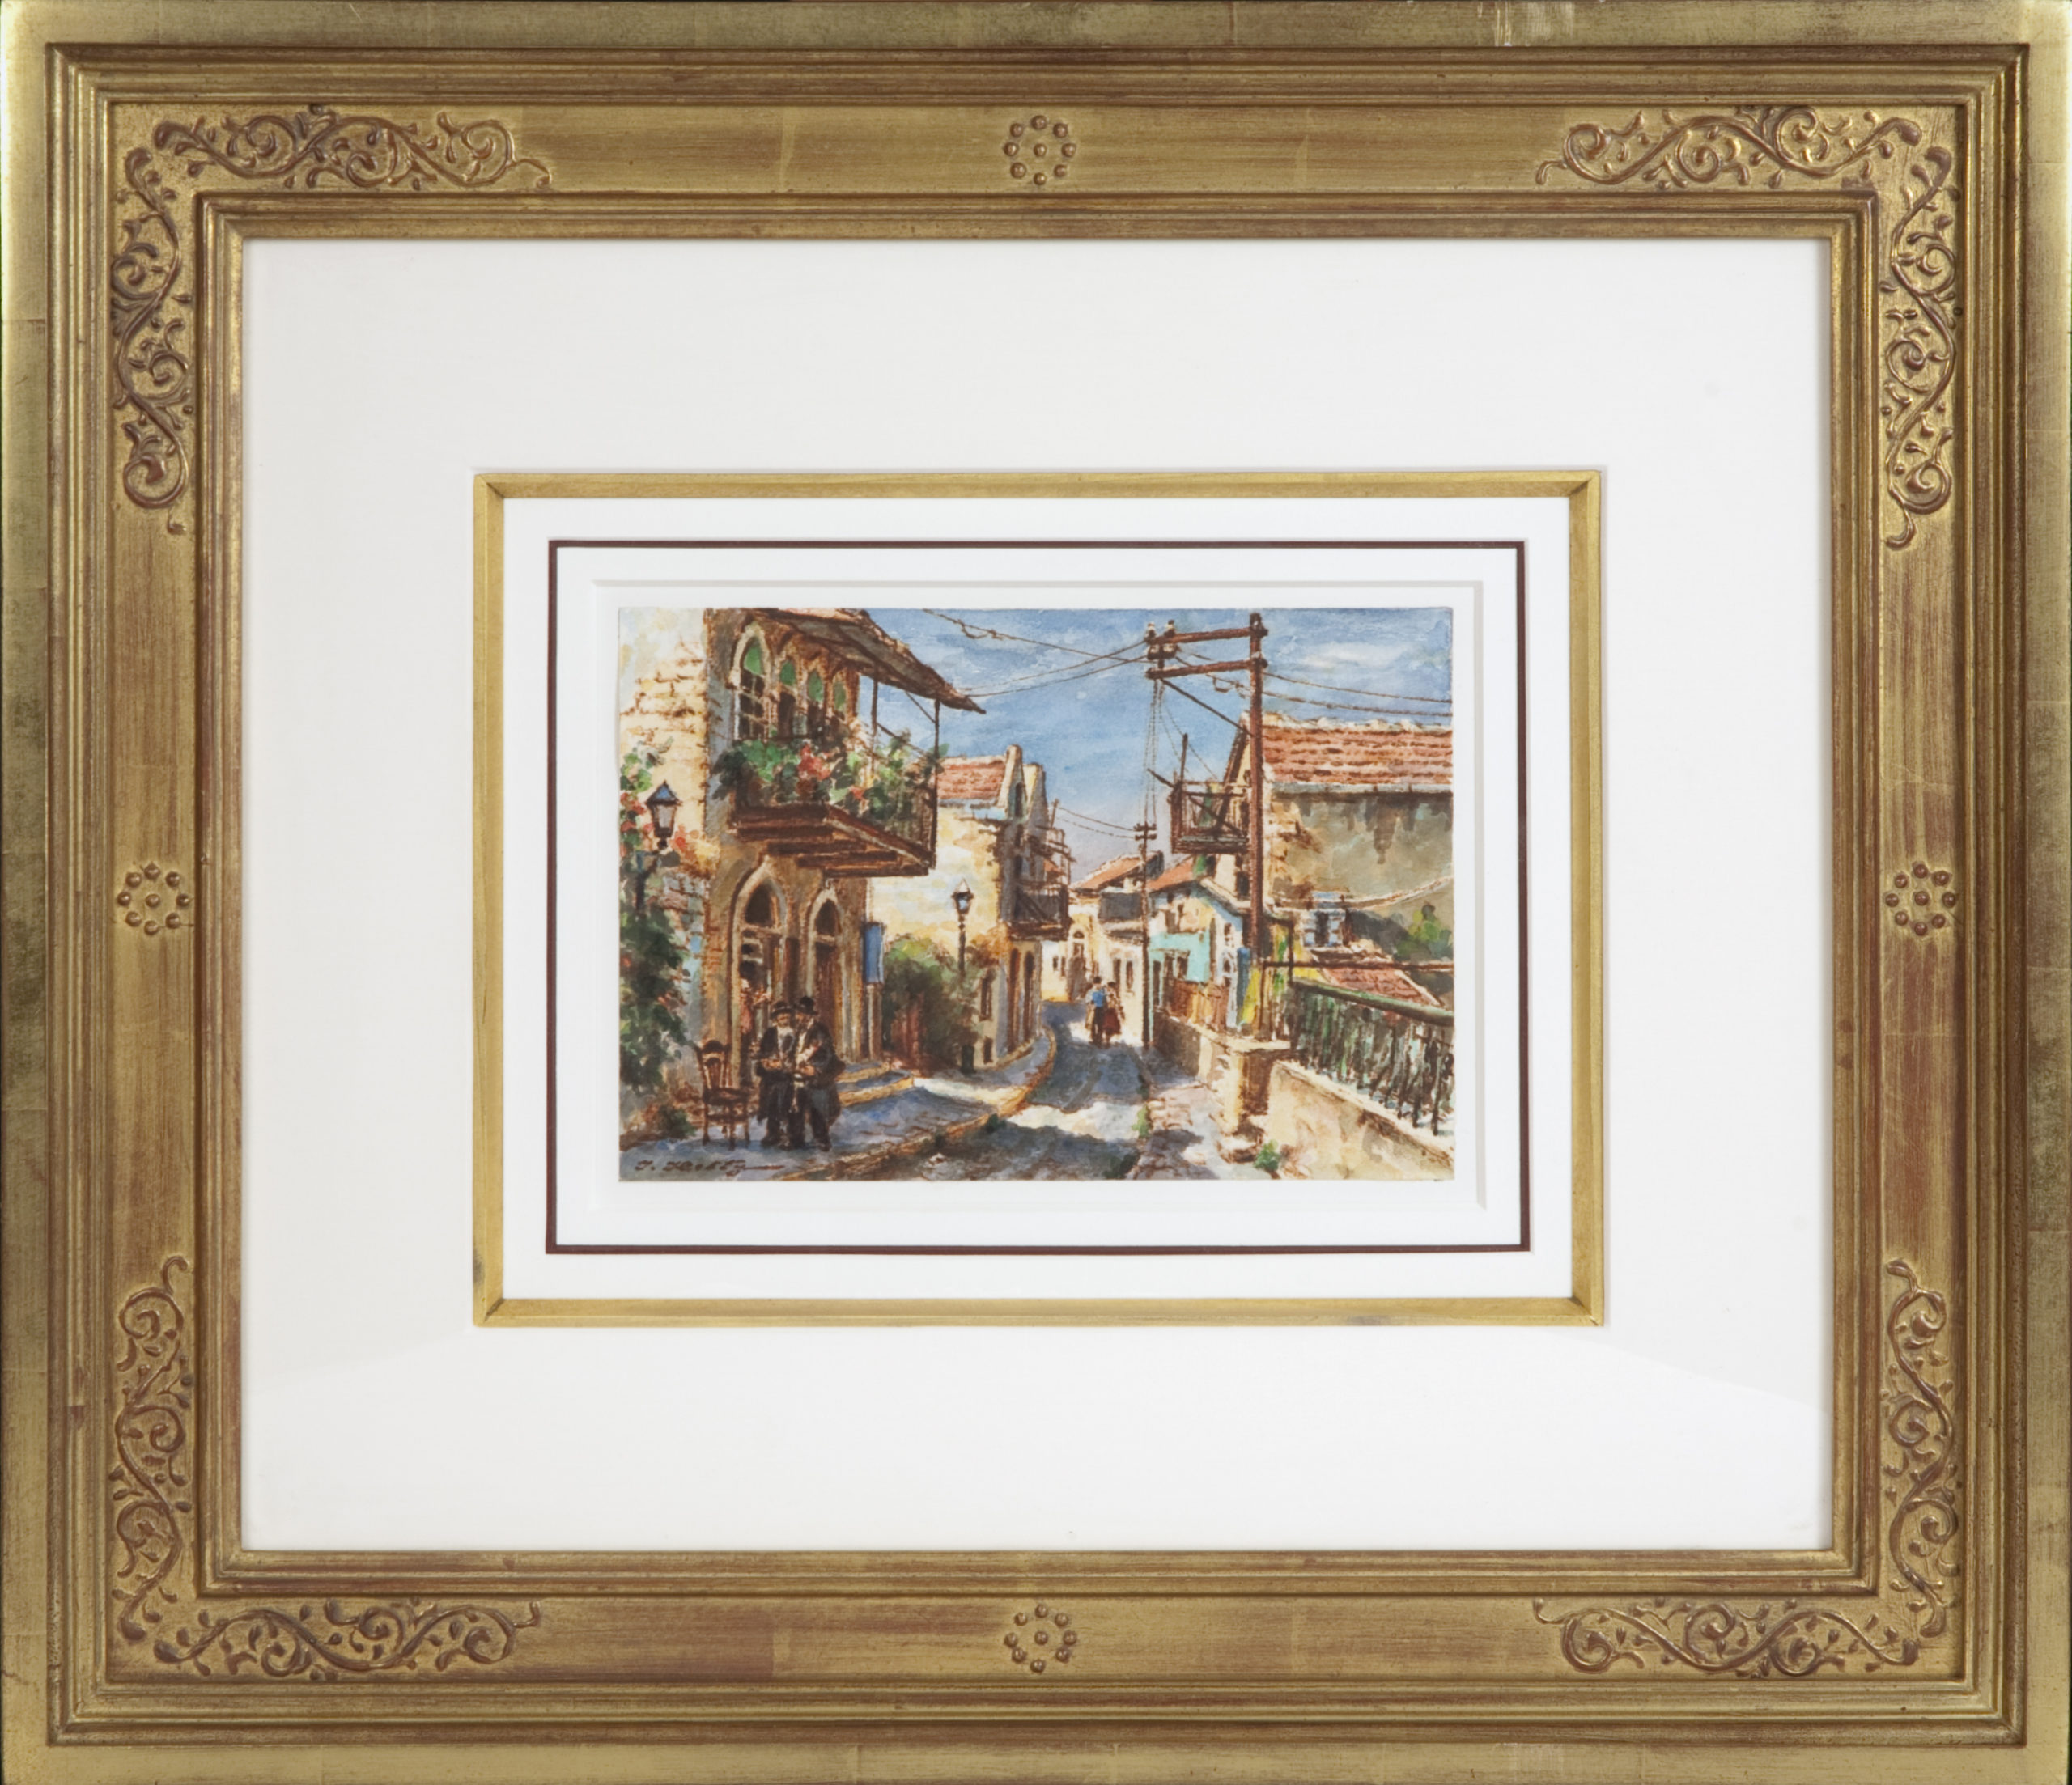 039 Street in Safed 1971 - Watercolor - 10 x 7 - Frame: 25 x 21.75 x 2